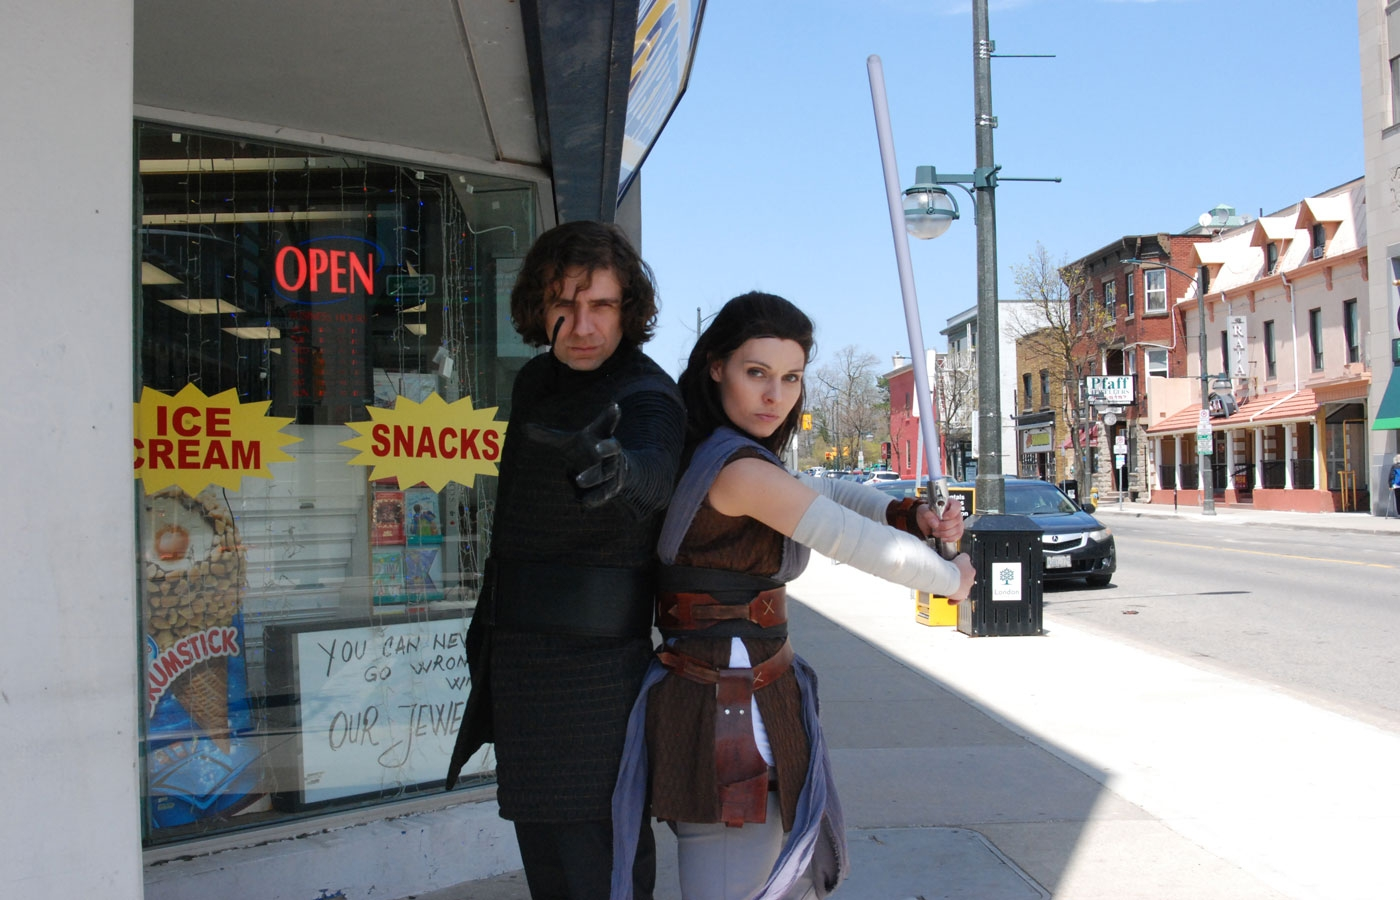 Henry Bartch as Kylo Ren and Amber Stallard (Ammie Cosplay) as Kylo Ren and Rey from Star Wars in London, ON